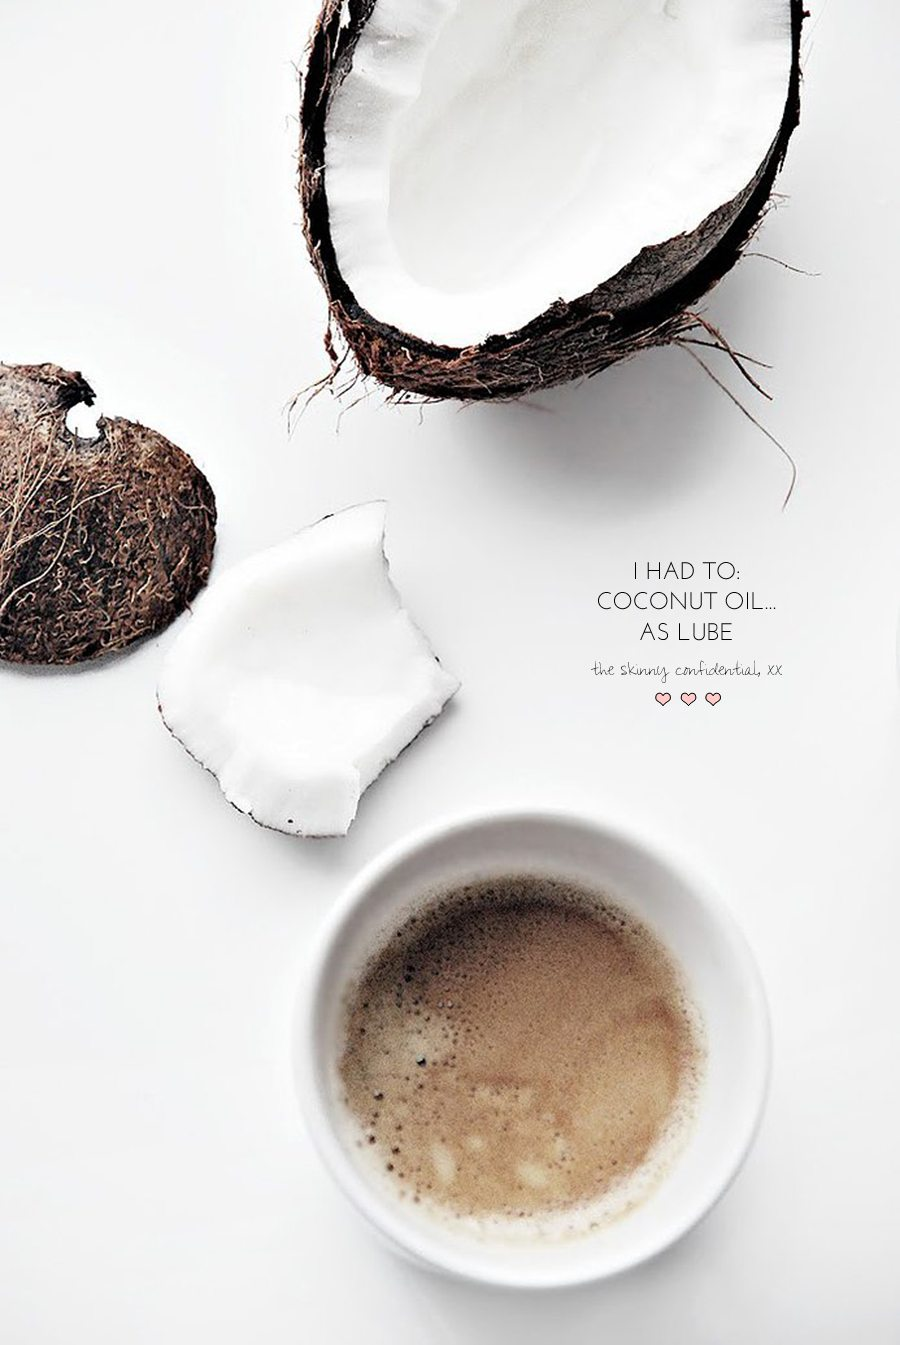 coconut oil as lube | by the skinny confidential